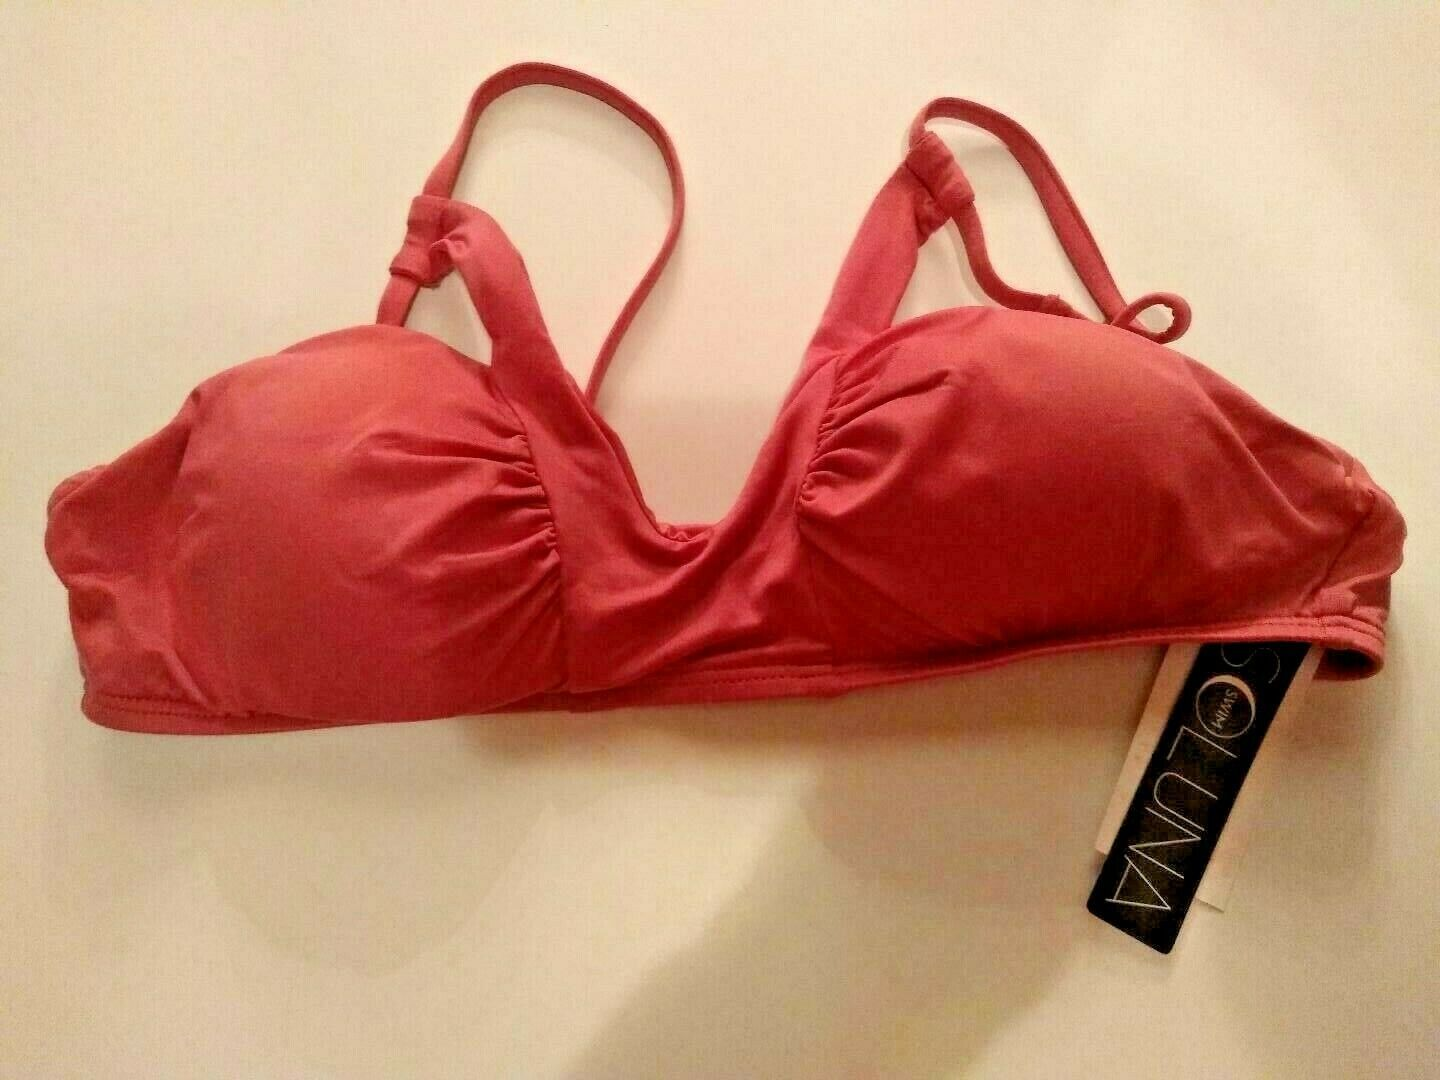 Soluna Swim Swimwear Top Size Medium Removable Cups